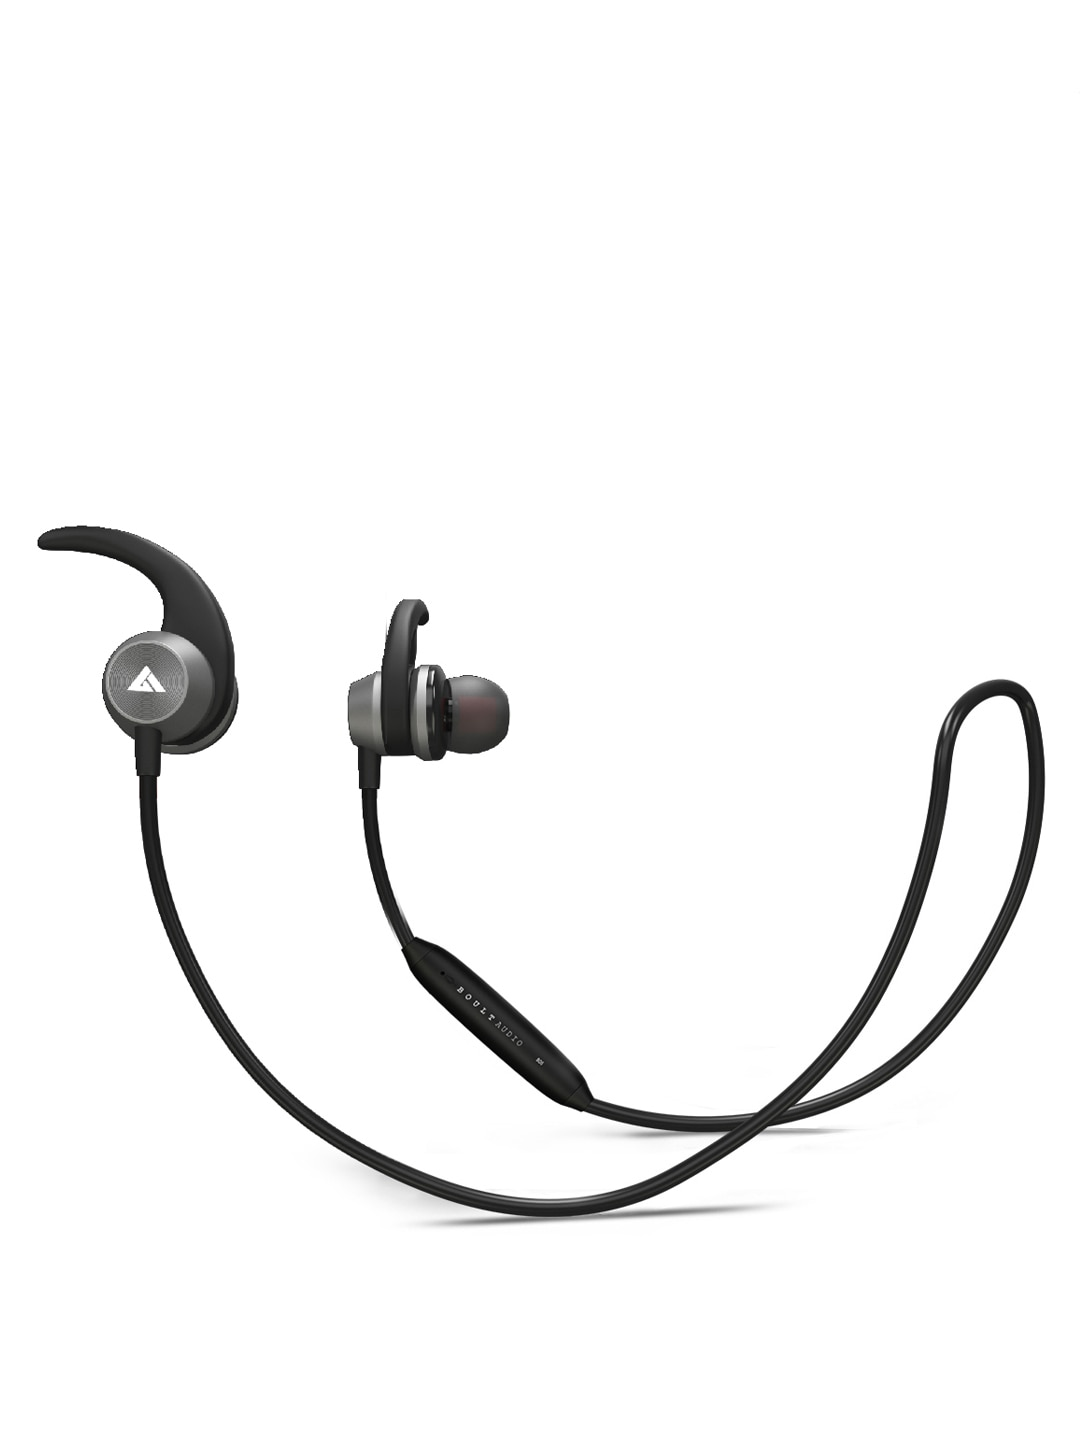 034af8ed9e4 Buy SoundPEATS Black Q12 Bluetooth 4.1 Wireless Magnetic In Ear ...